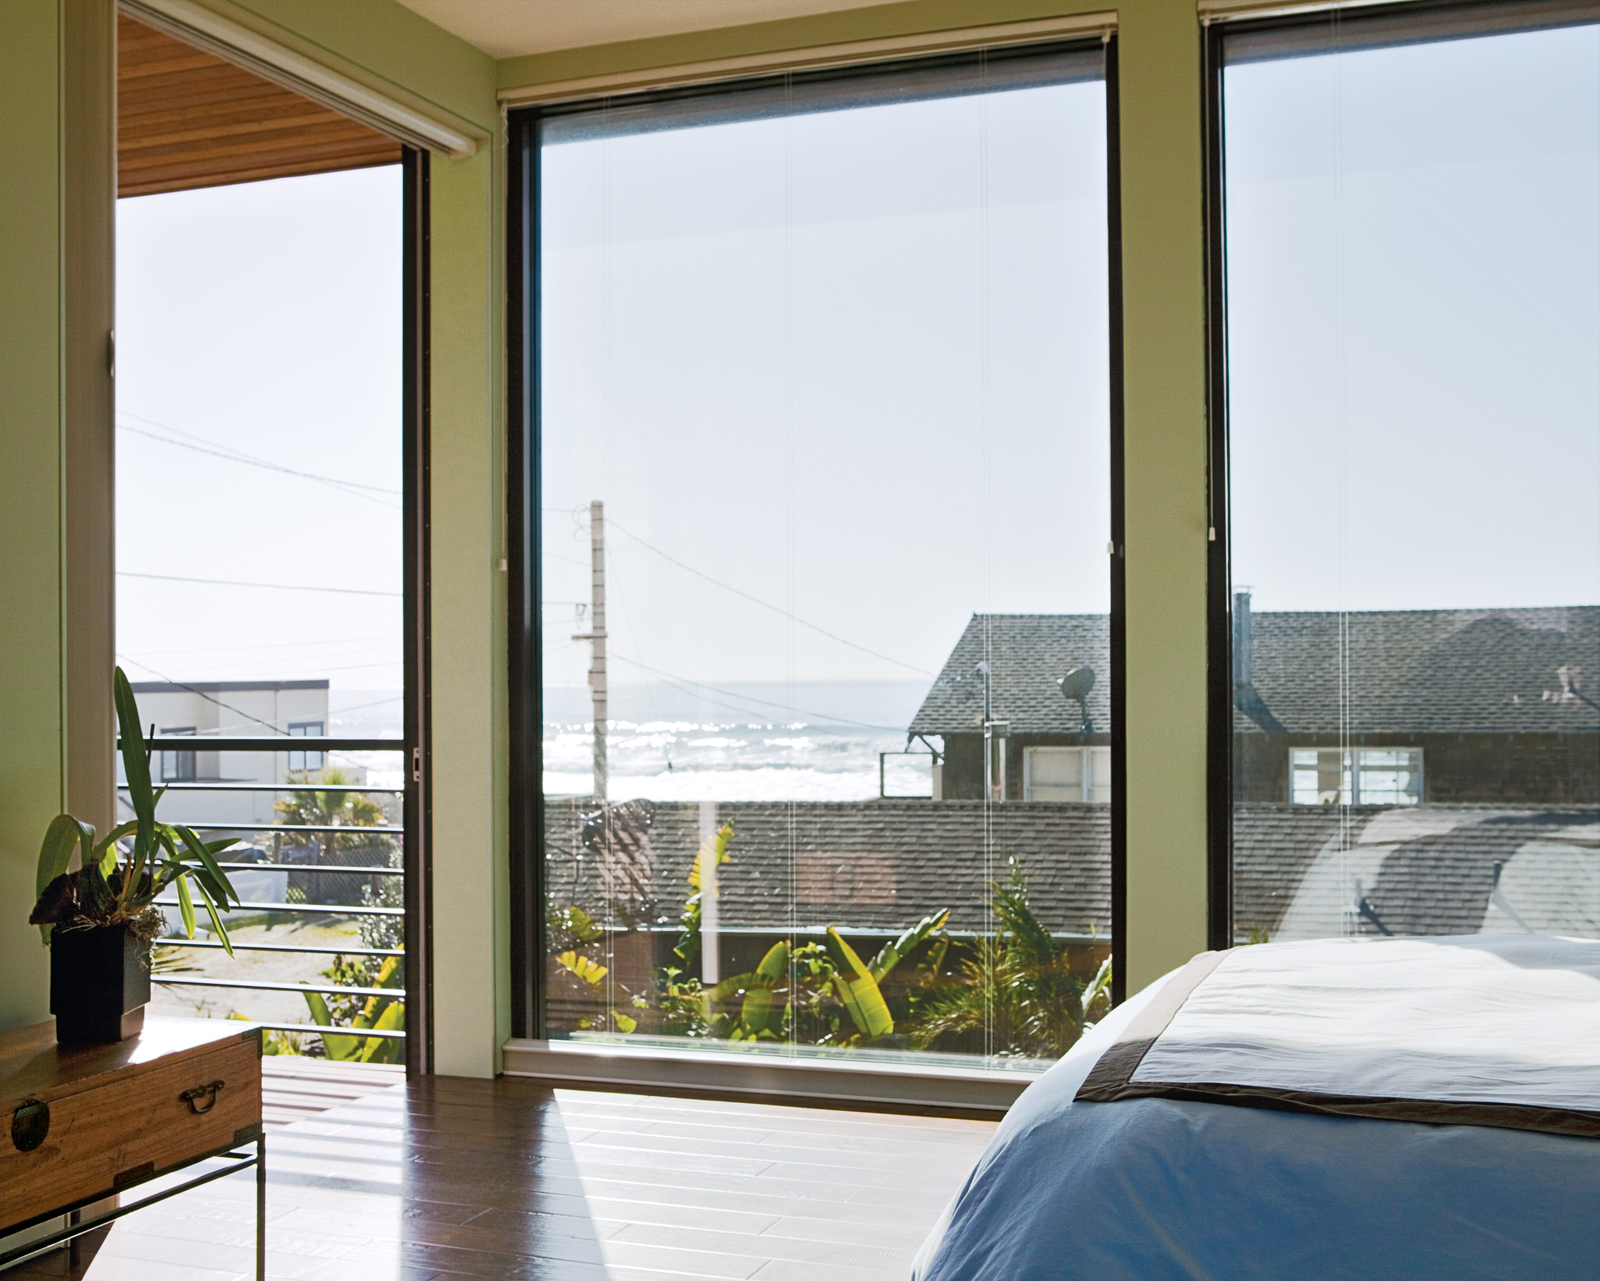 Floor-to-ceiling windows in the bedroom create the sensation of being outside, as if the entire house is one platform deck strategically shielded from the elements.